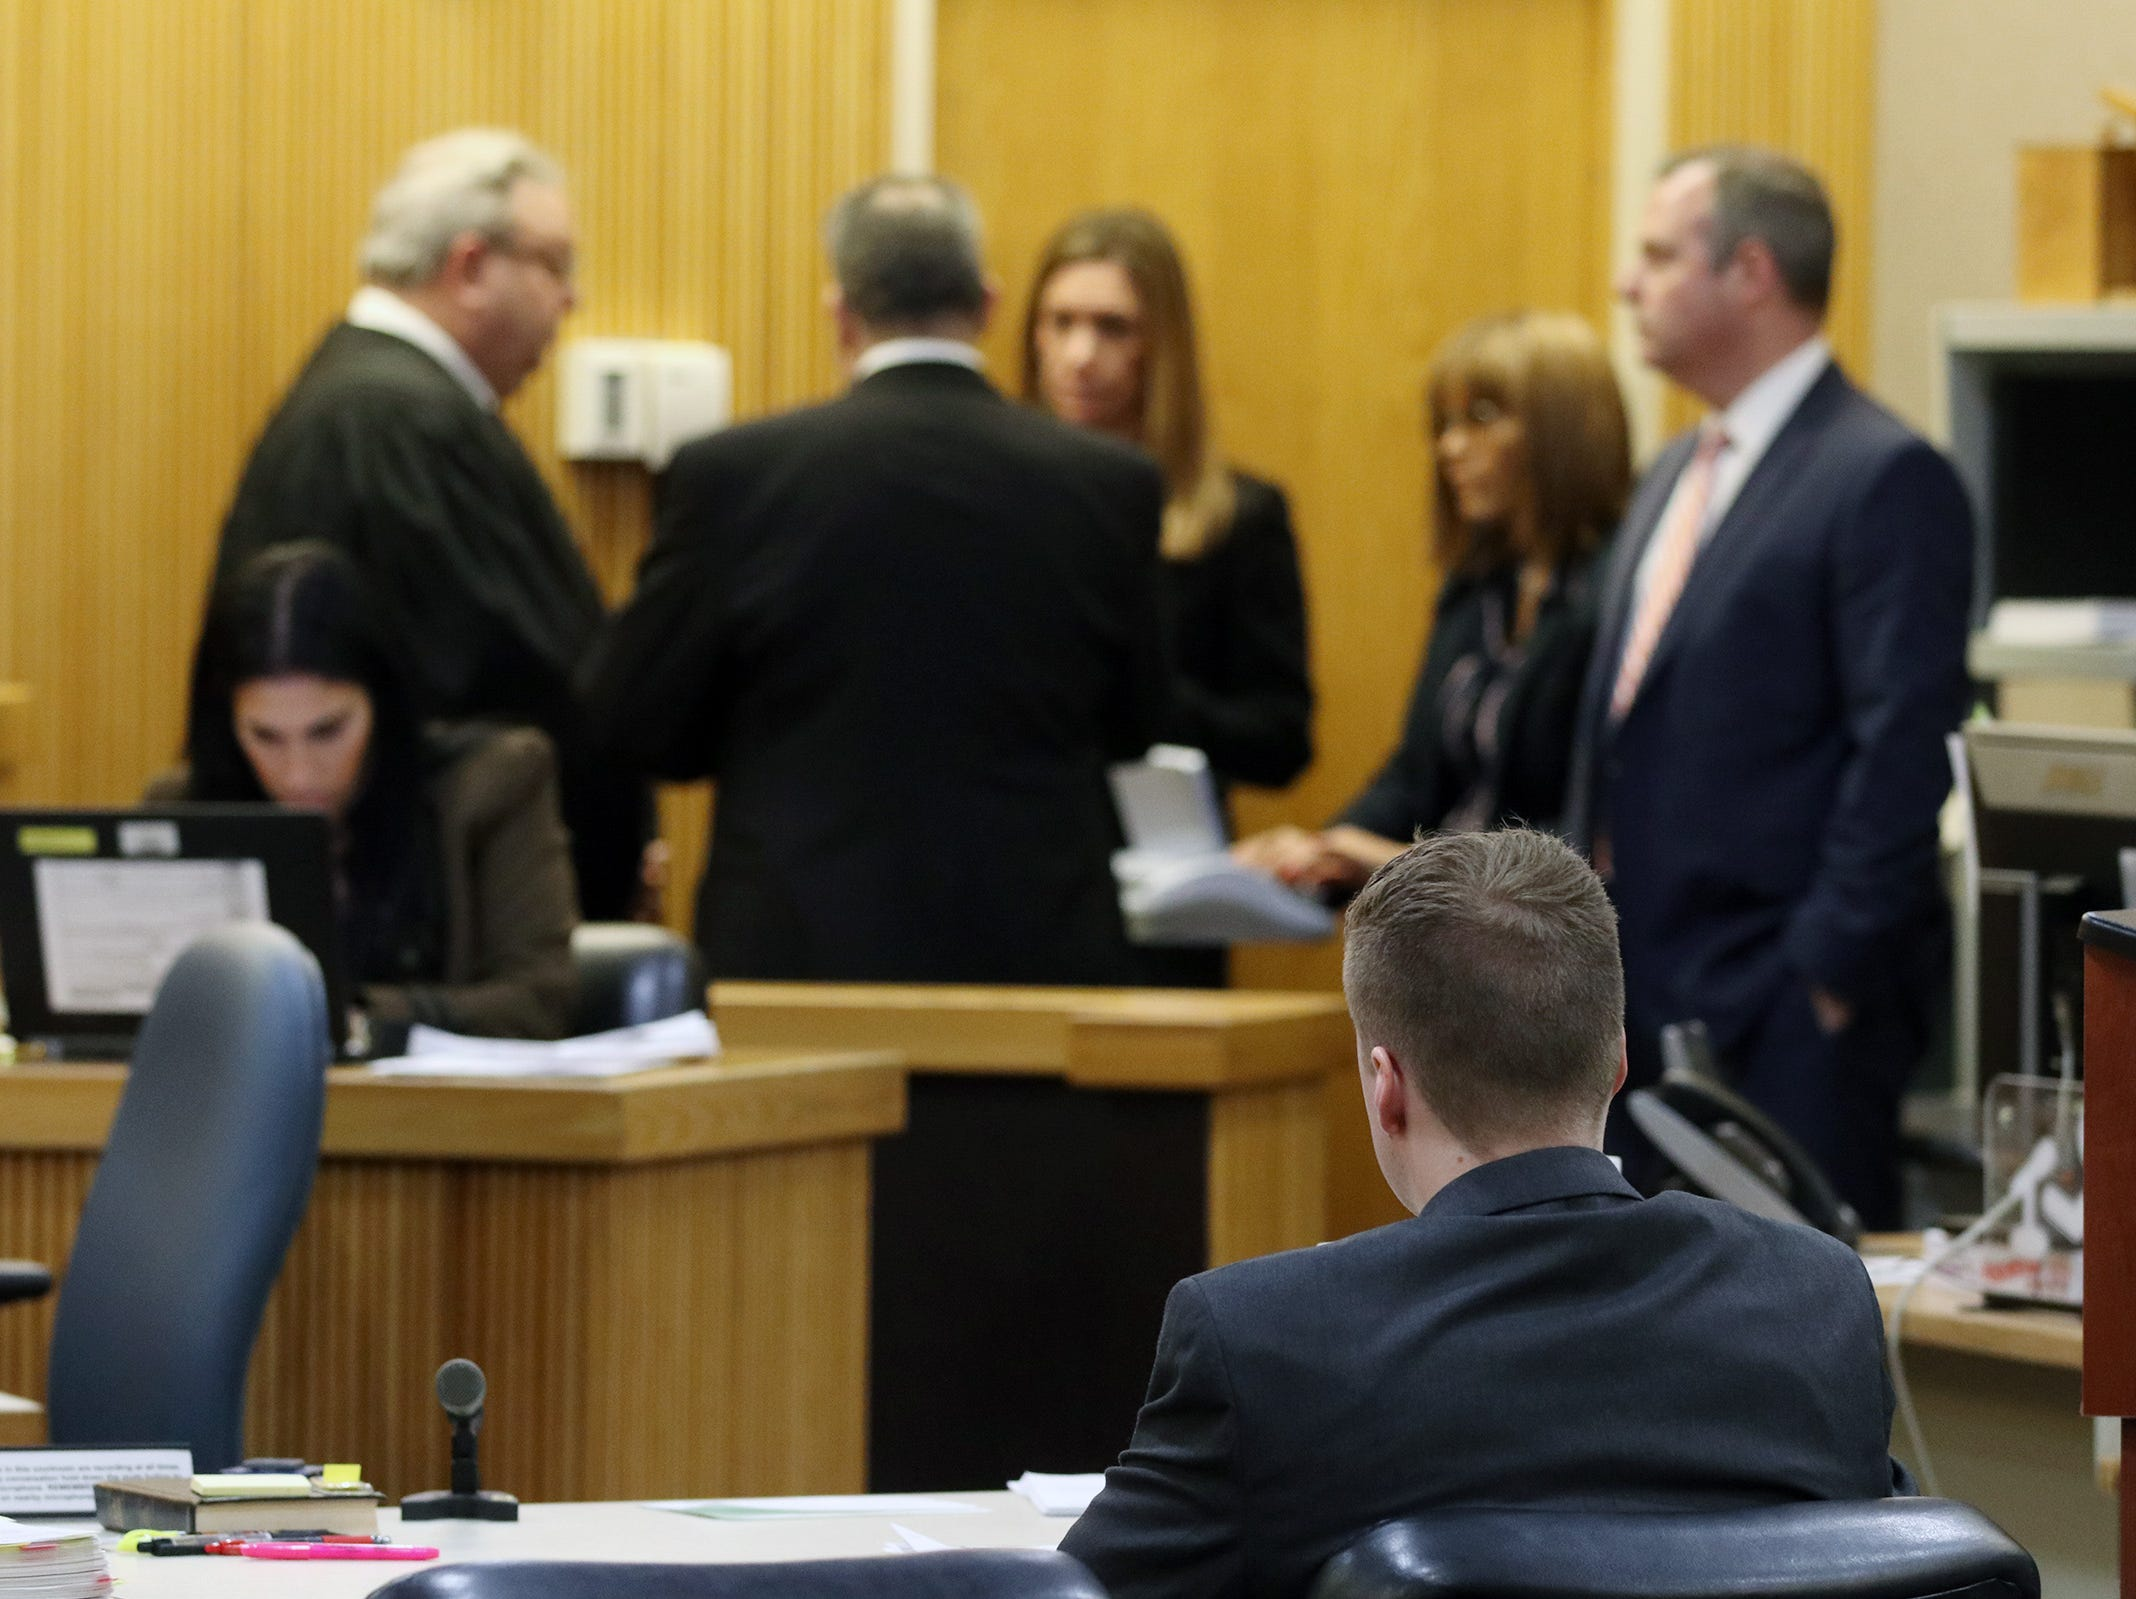 A sidebar is requested during the trial of Liam McAtasney, who is charged with the murder of former high school classmate, Sarah Stern, before Superior Court Judge Richard W. English at the Monmouth County Courthouse in Freehold, NJ Wednesday January 30, 2019.